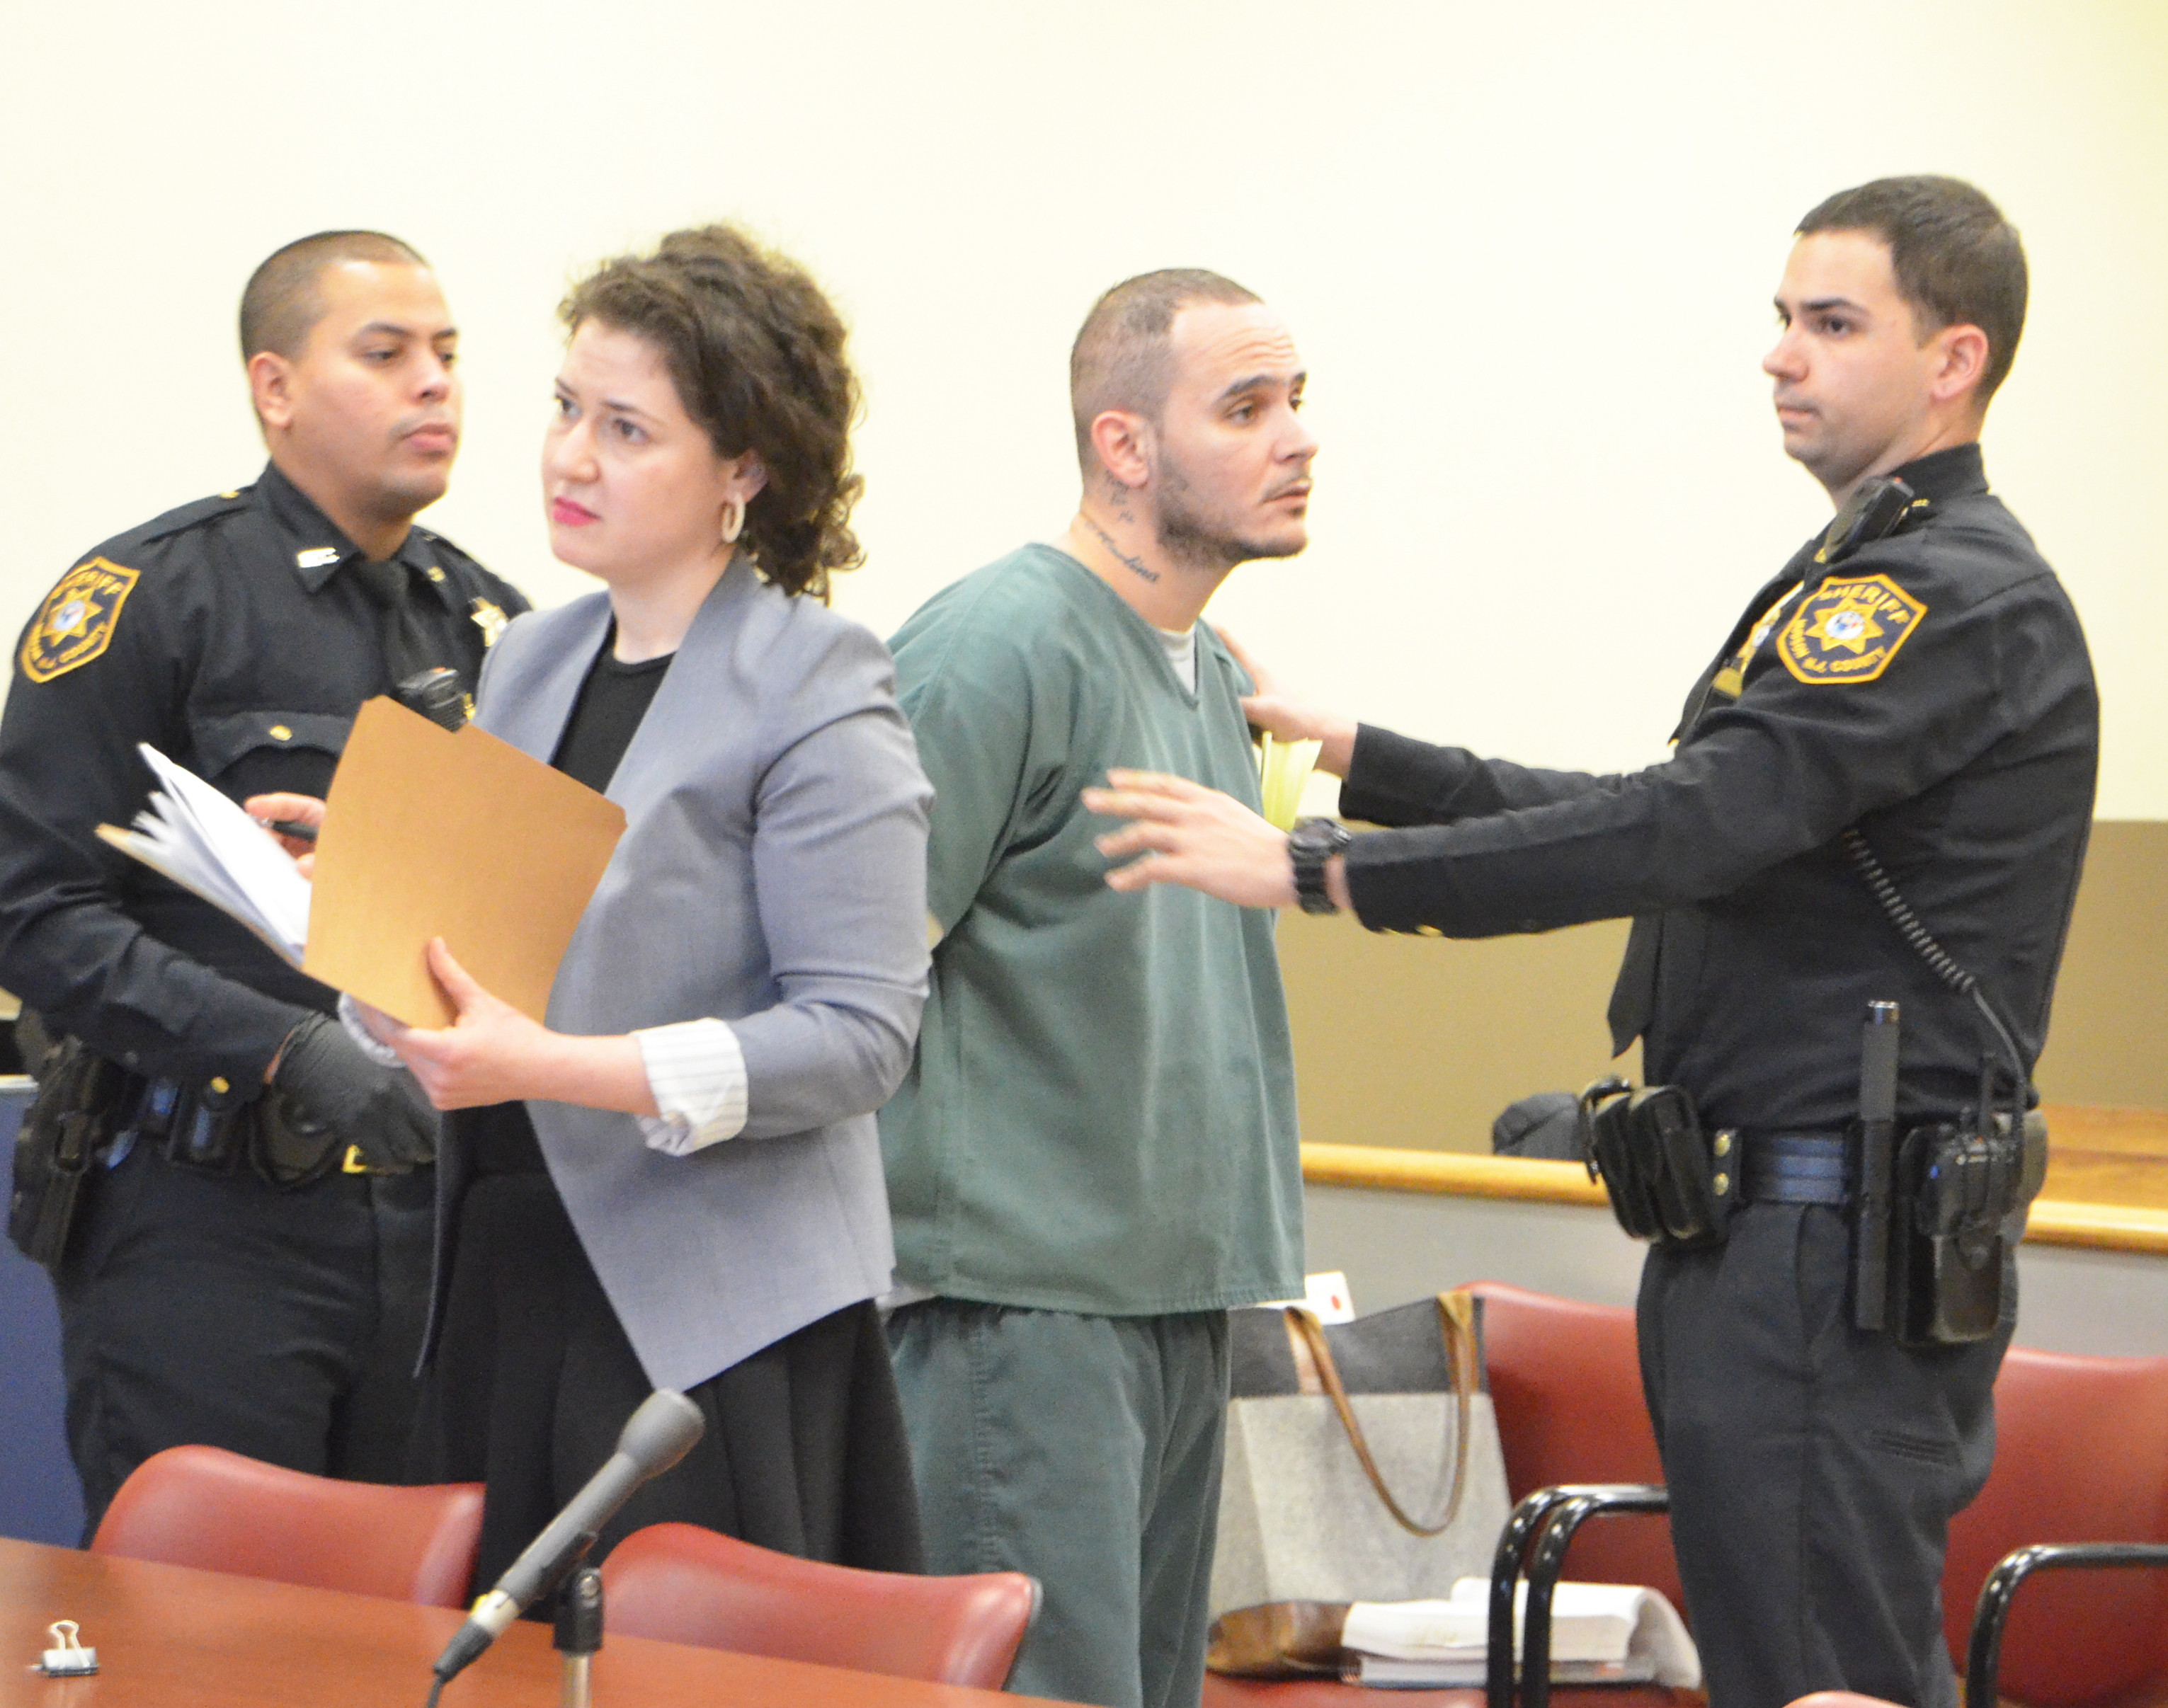 Jersey City felon walks out of his own sentencing